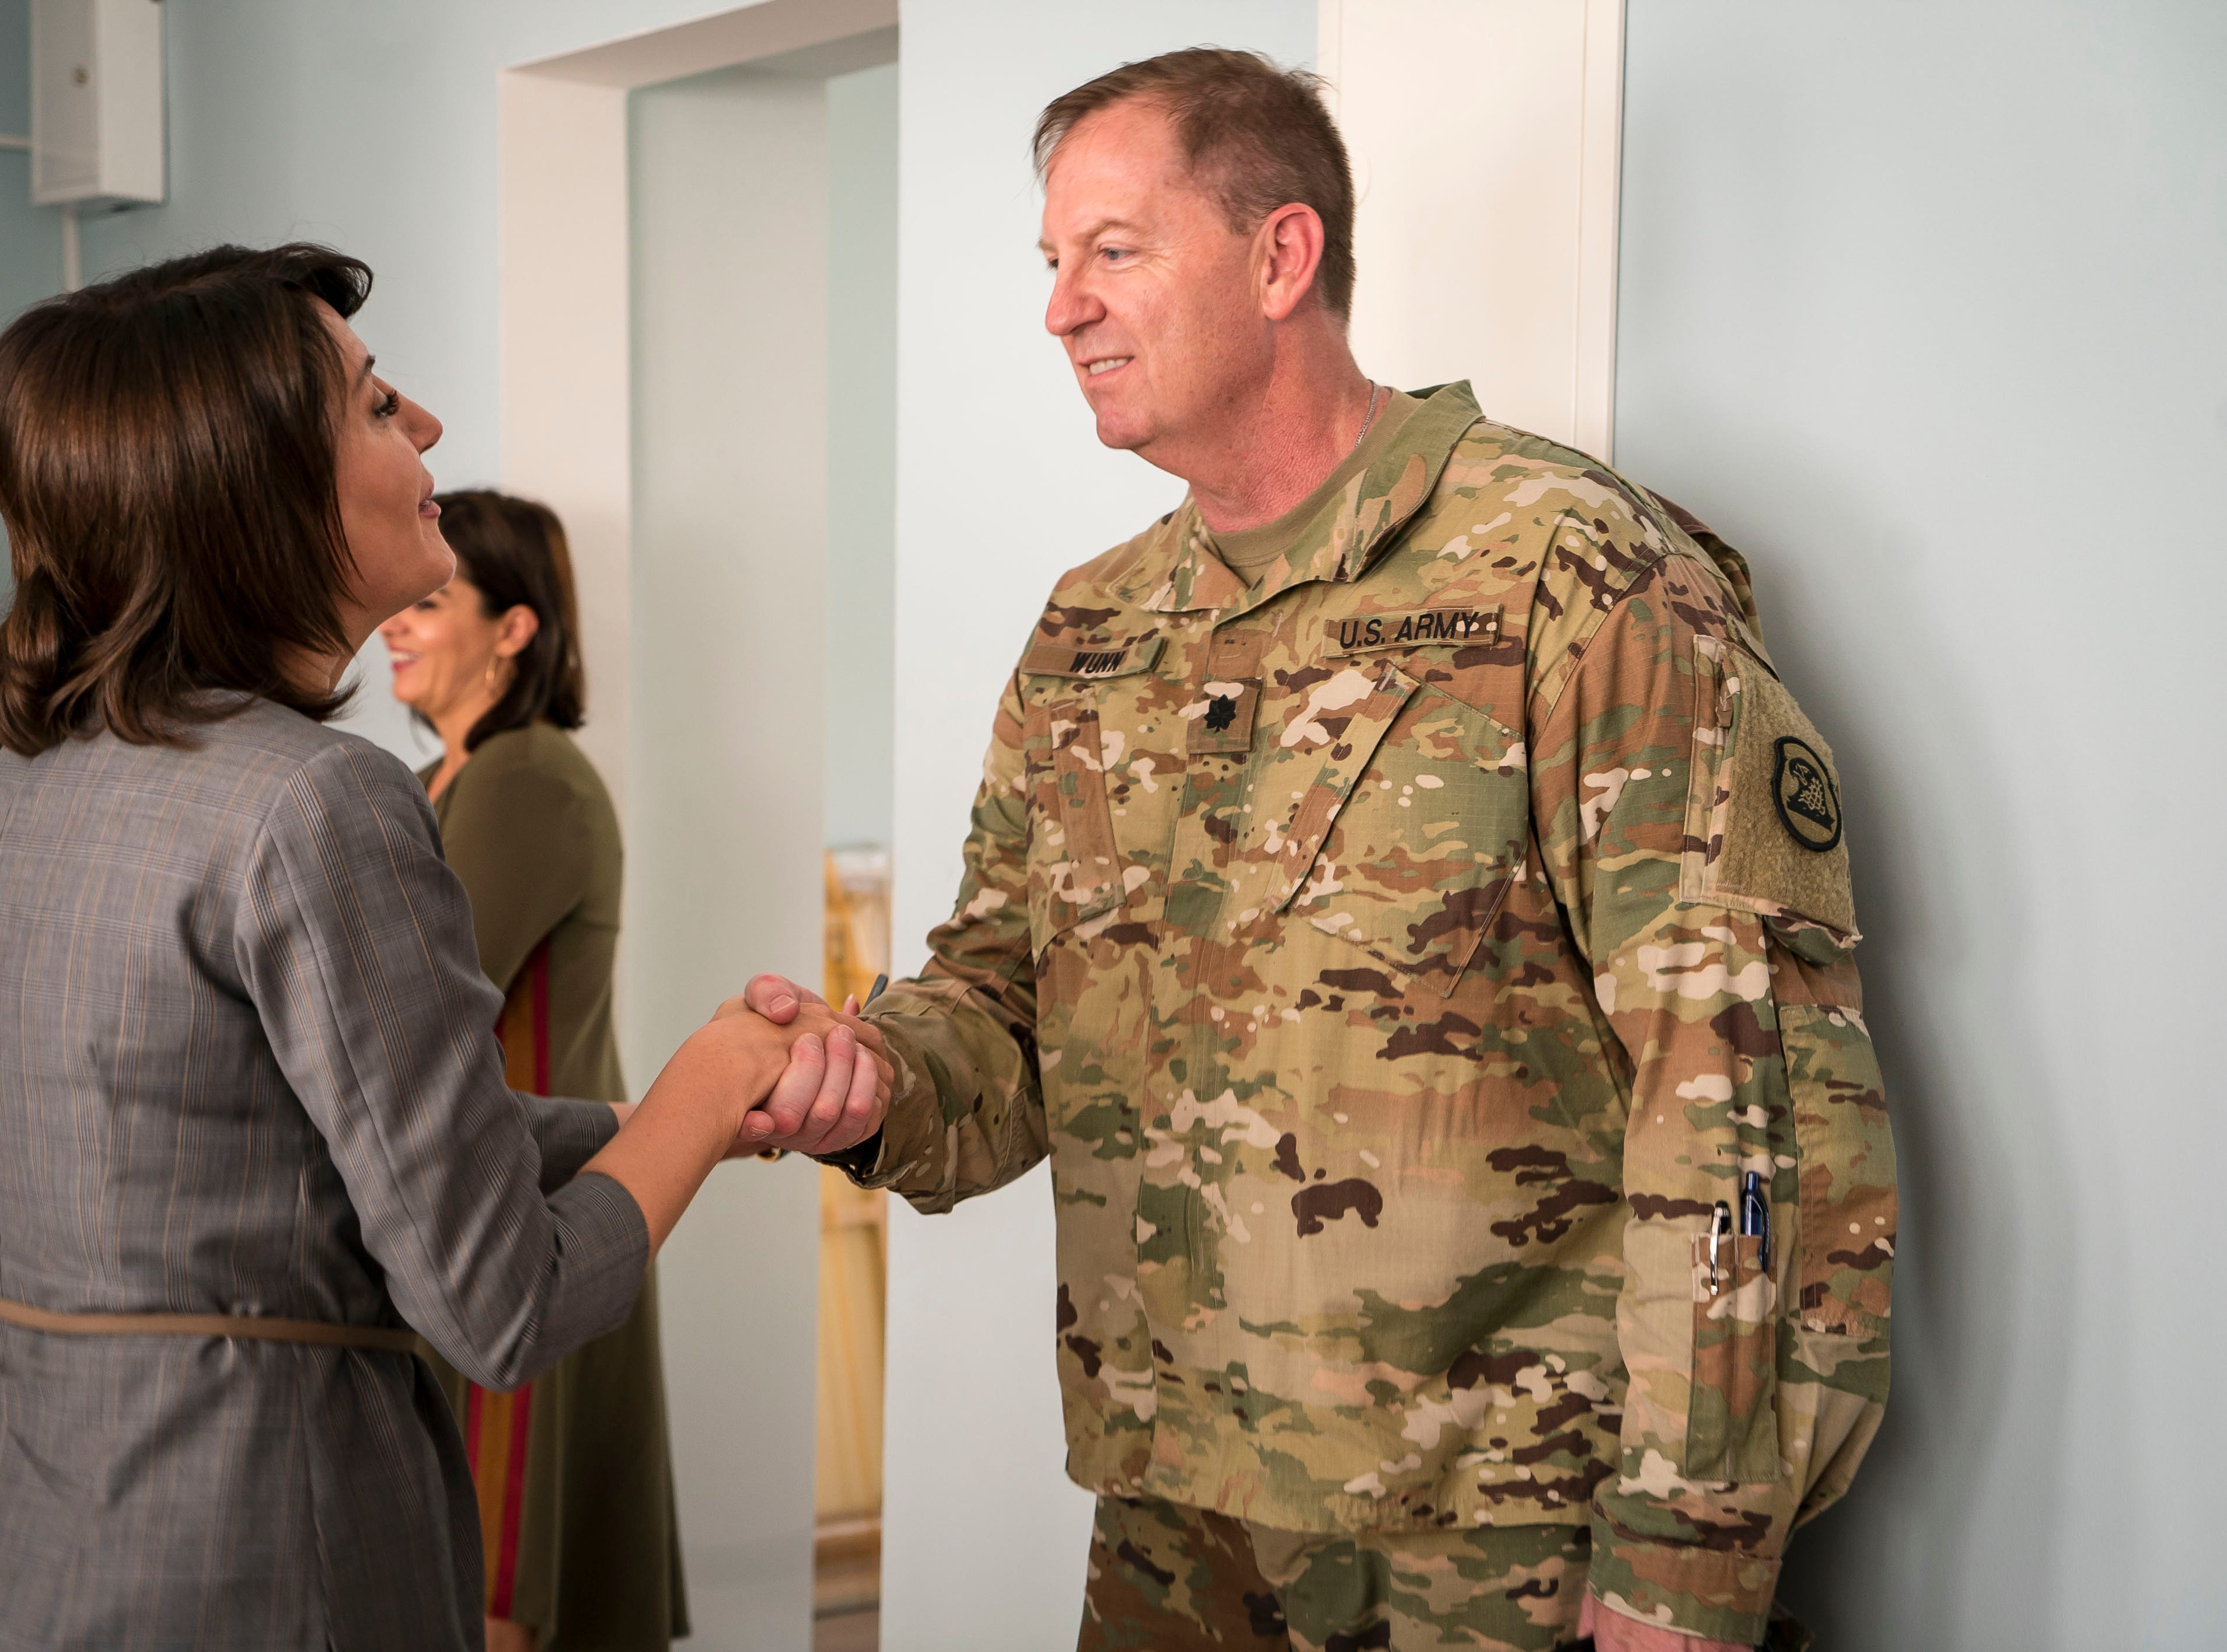 Former Kosovo president Atifete Jahjaga greets Lt. Col. Michael Wunn, former director of the Iowa-Kosovo partnership, Tuesday, Sept. 18, 2018, in Pristina, Kosovo. ÒRather than New York or Washington D.C., where they're just a small fish in a big ocean, they can come to Iowa,Ó he said. Here they Òhave more of that personal connection and access to policy makers, access to business leaders, access to the experts.Ó